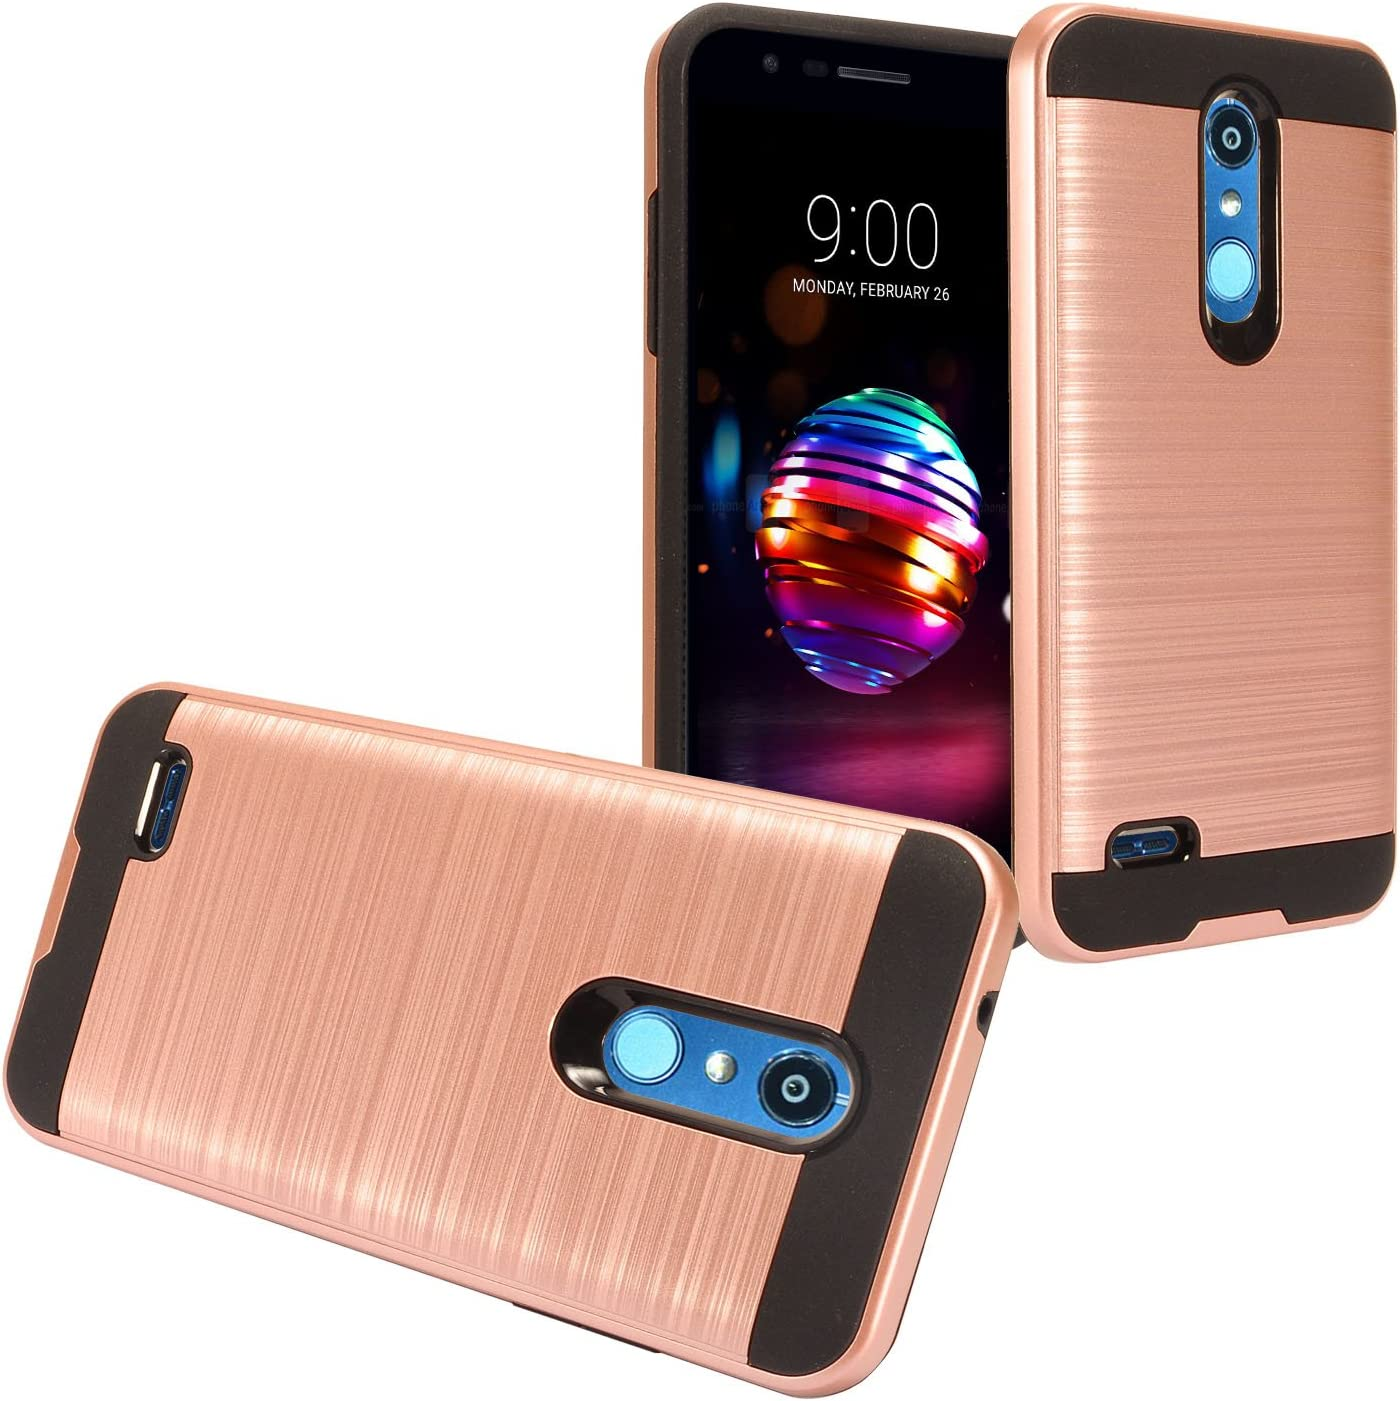 LG K30 LM-X410, Phoenix Plus X410AS, Harmony 2, Premier Pro LTE L413DL - Brushed Style Hybrid Case + Tempered Glass Screen Protector - CS3 Rosegold